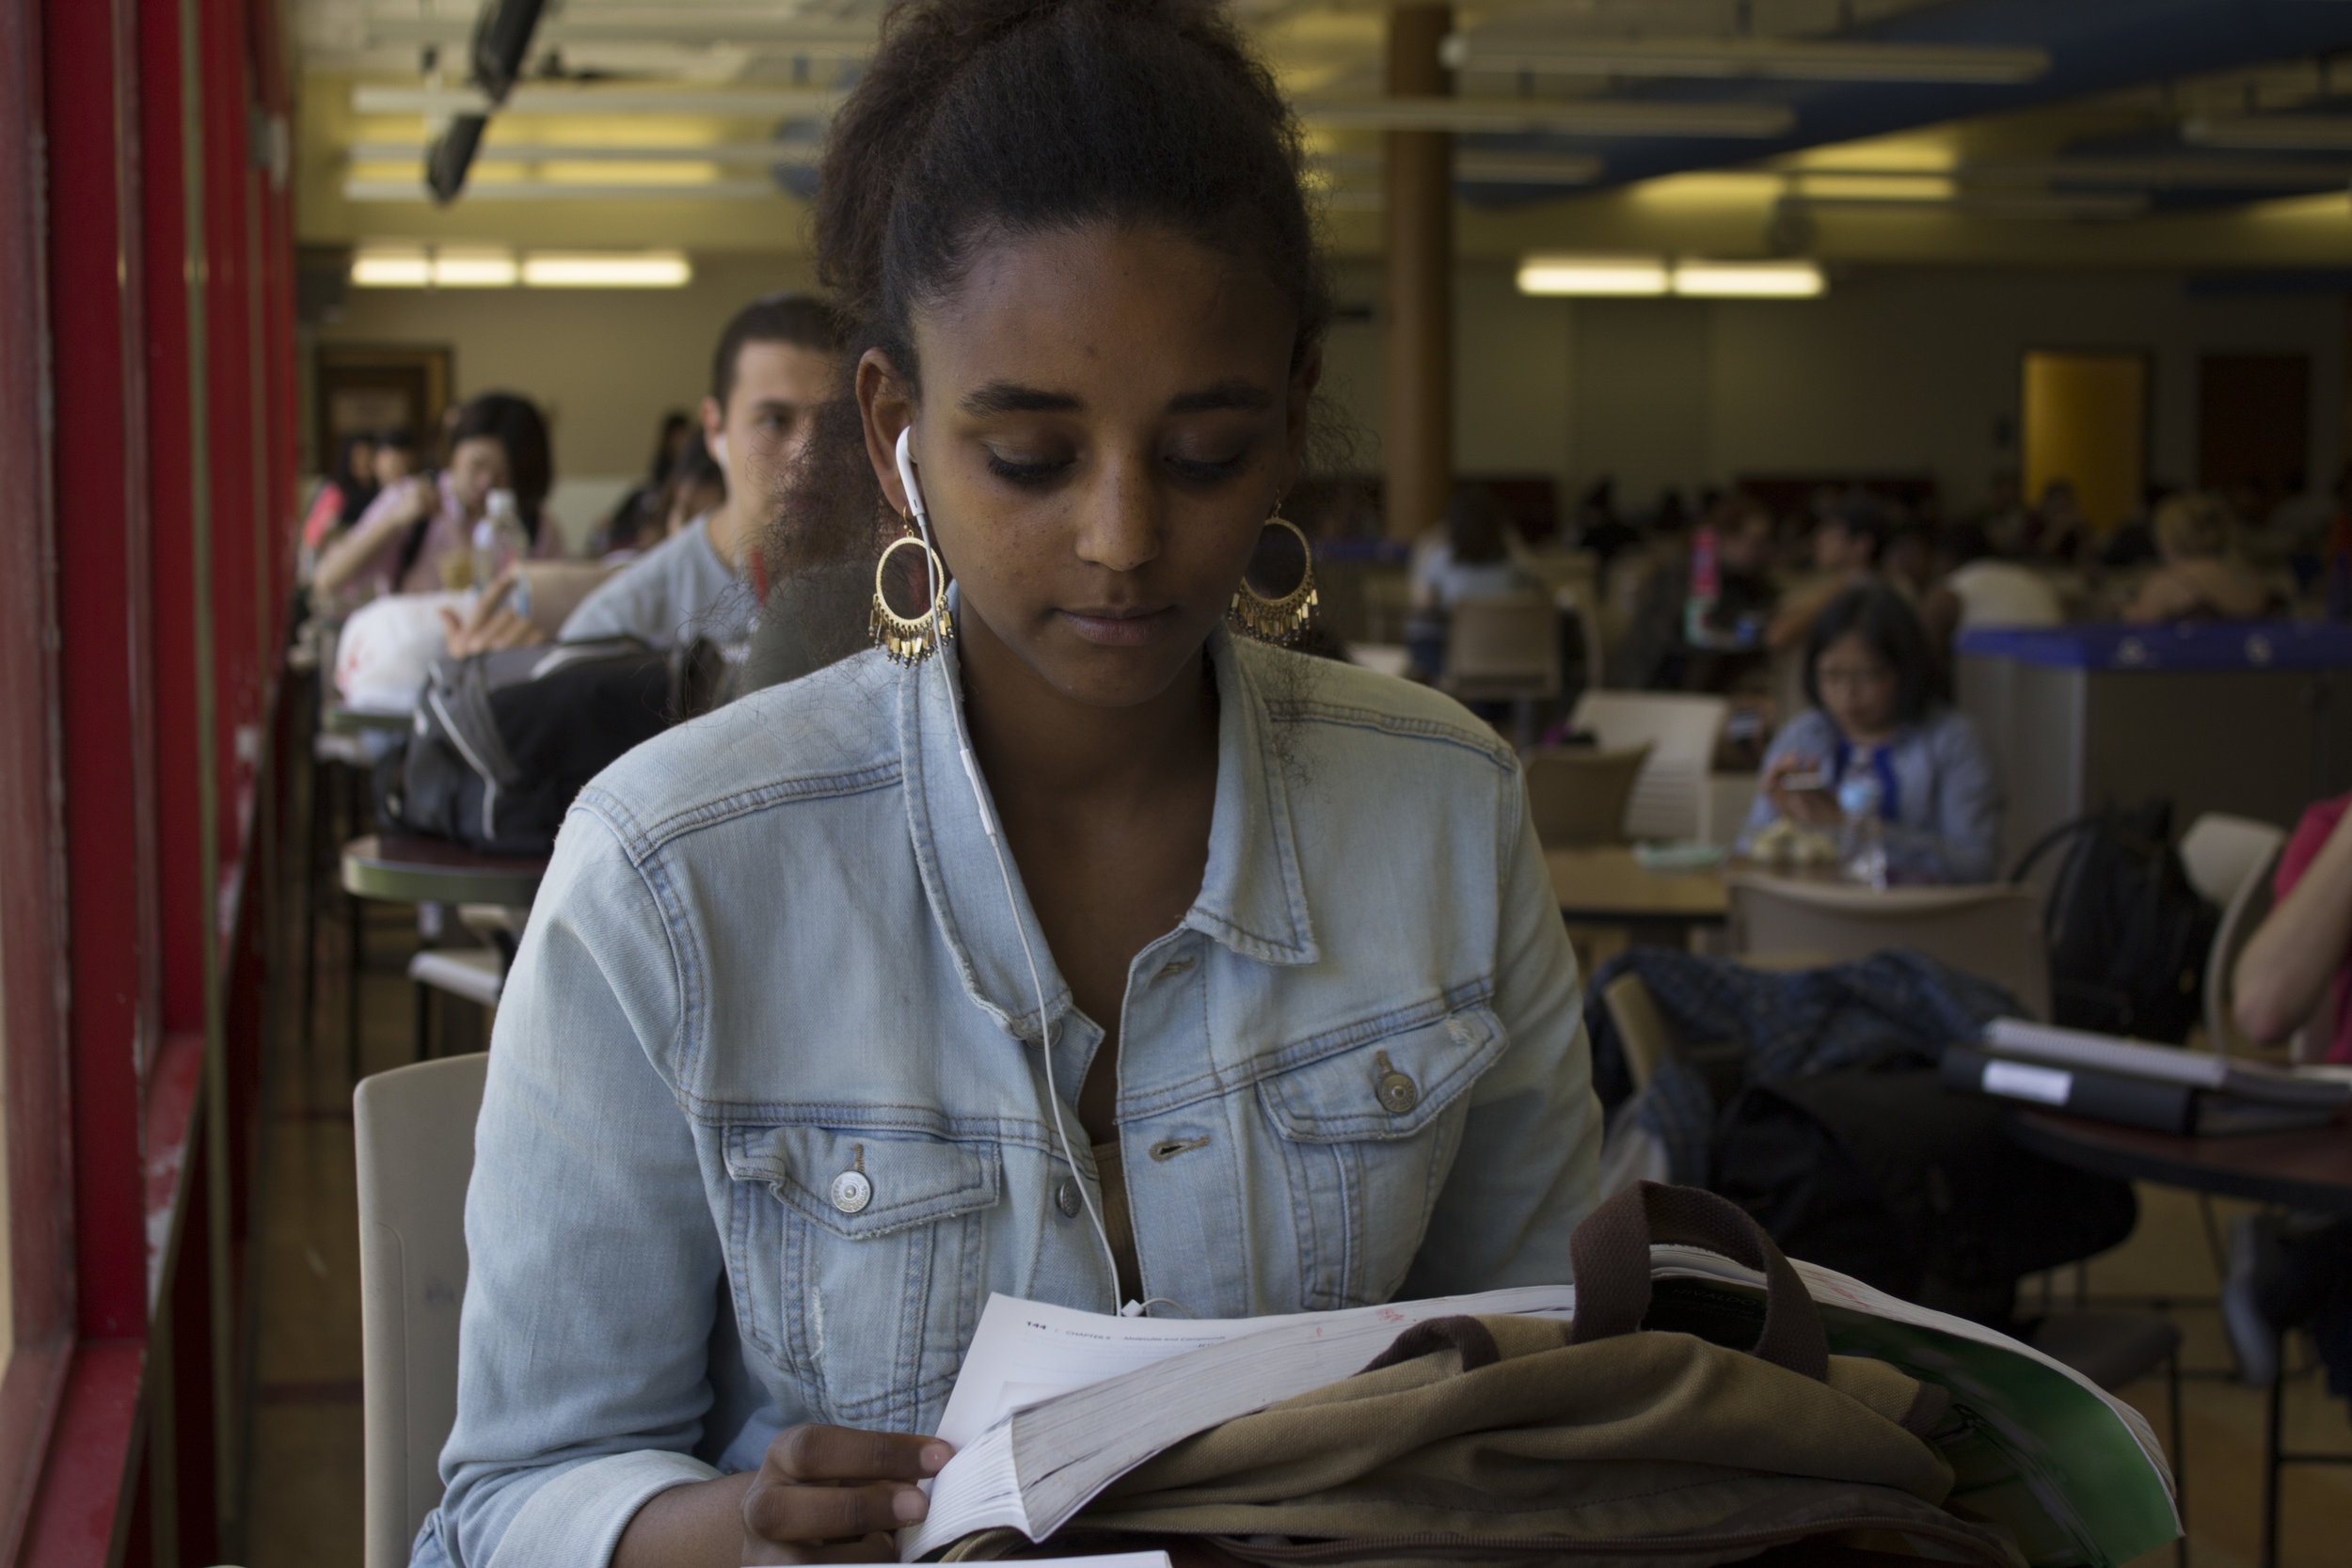 Victoria Gidey, 22, studying at Santa Monica College to become a nurse. Gidey reviewing notes at the school cafeteria just before a test. Photo taken on Wednesday March 29, 2017 at Santa Monica, Calif. By Emeline Moquillon, staff photographer.